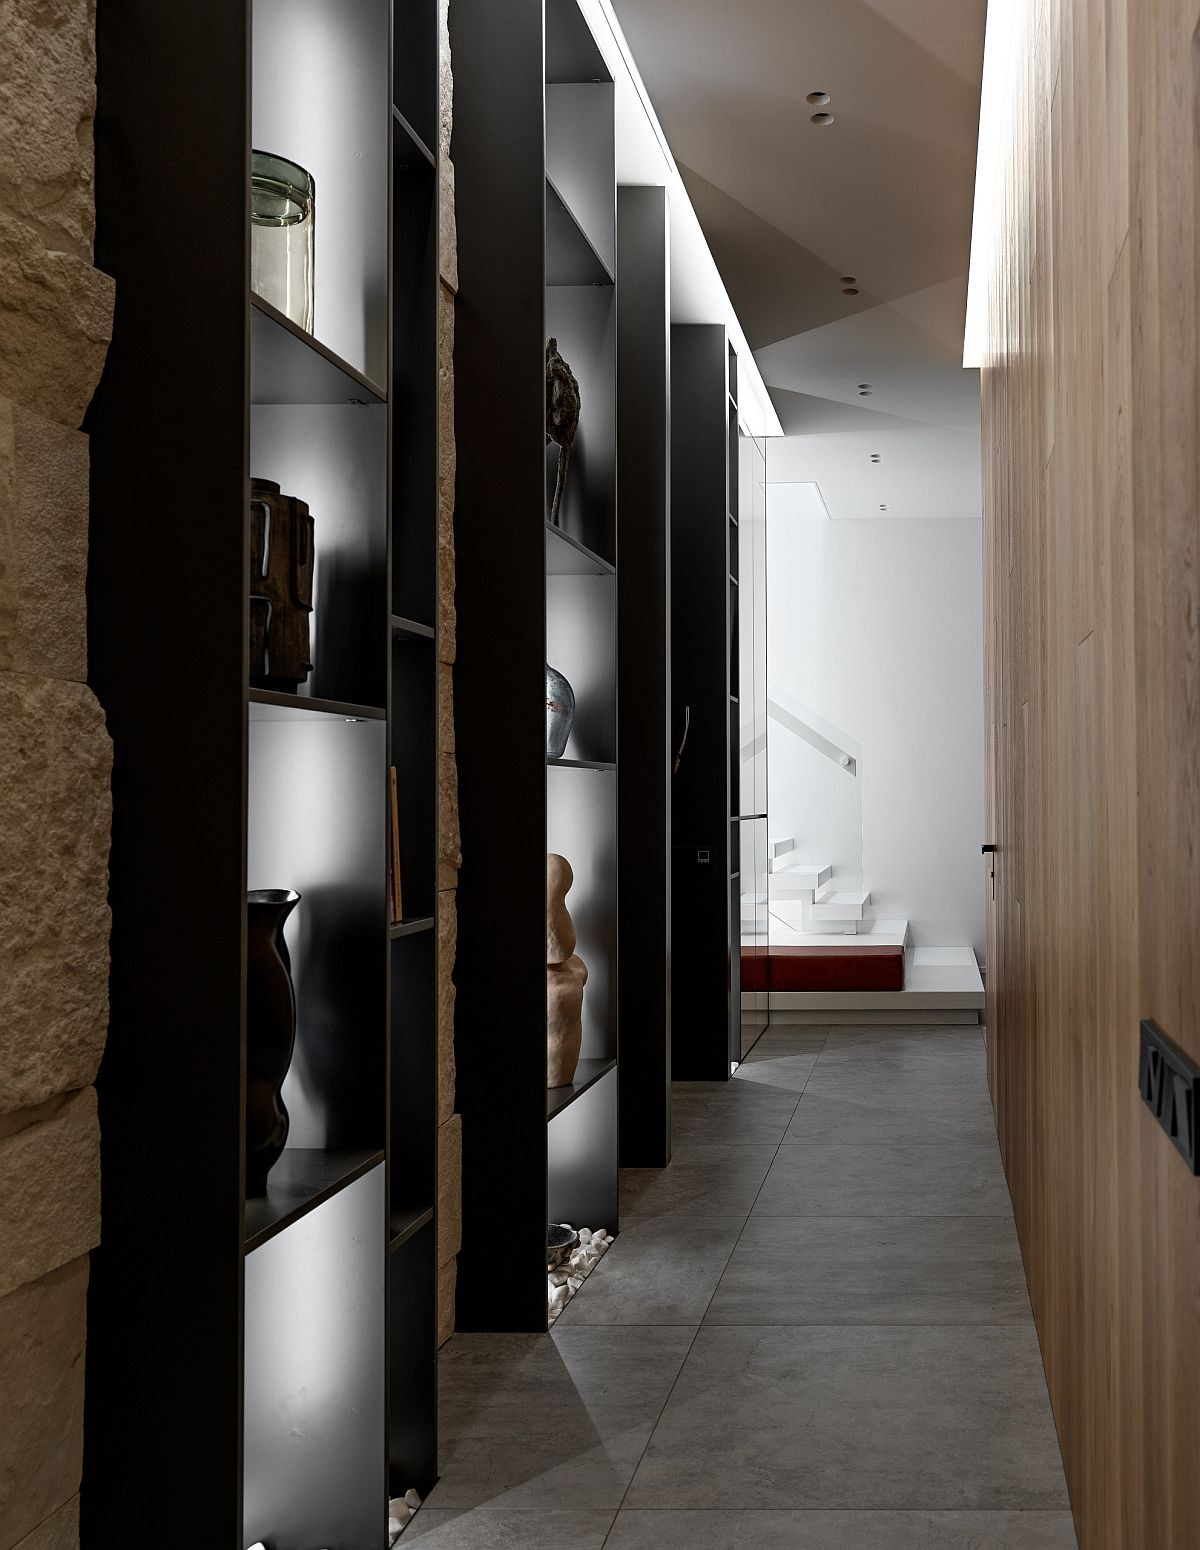 Series of brilliantly illuminated shelves create a stunning display in this unique hallway